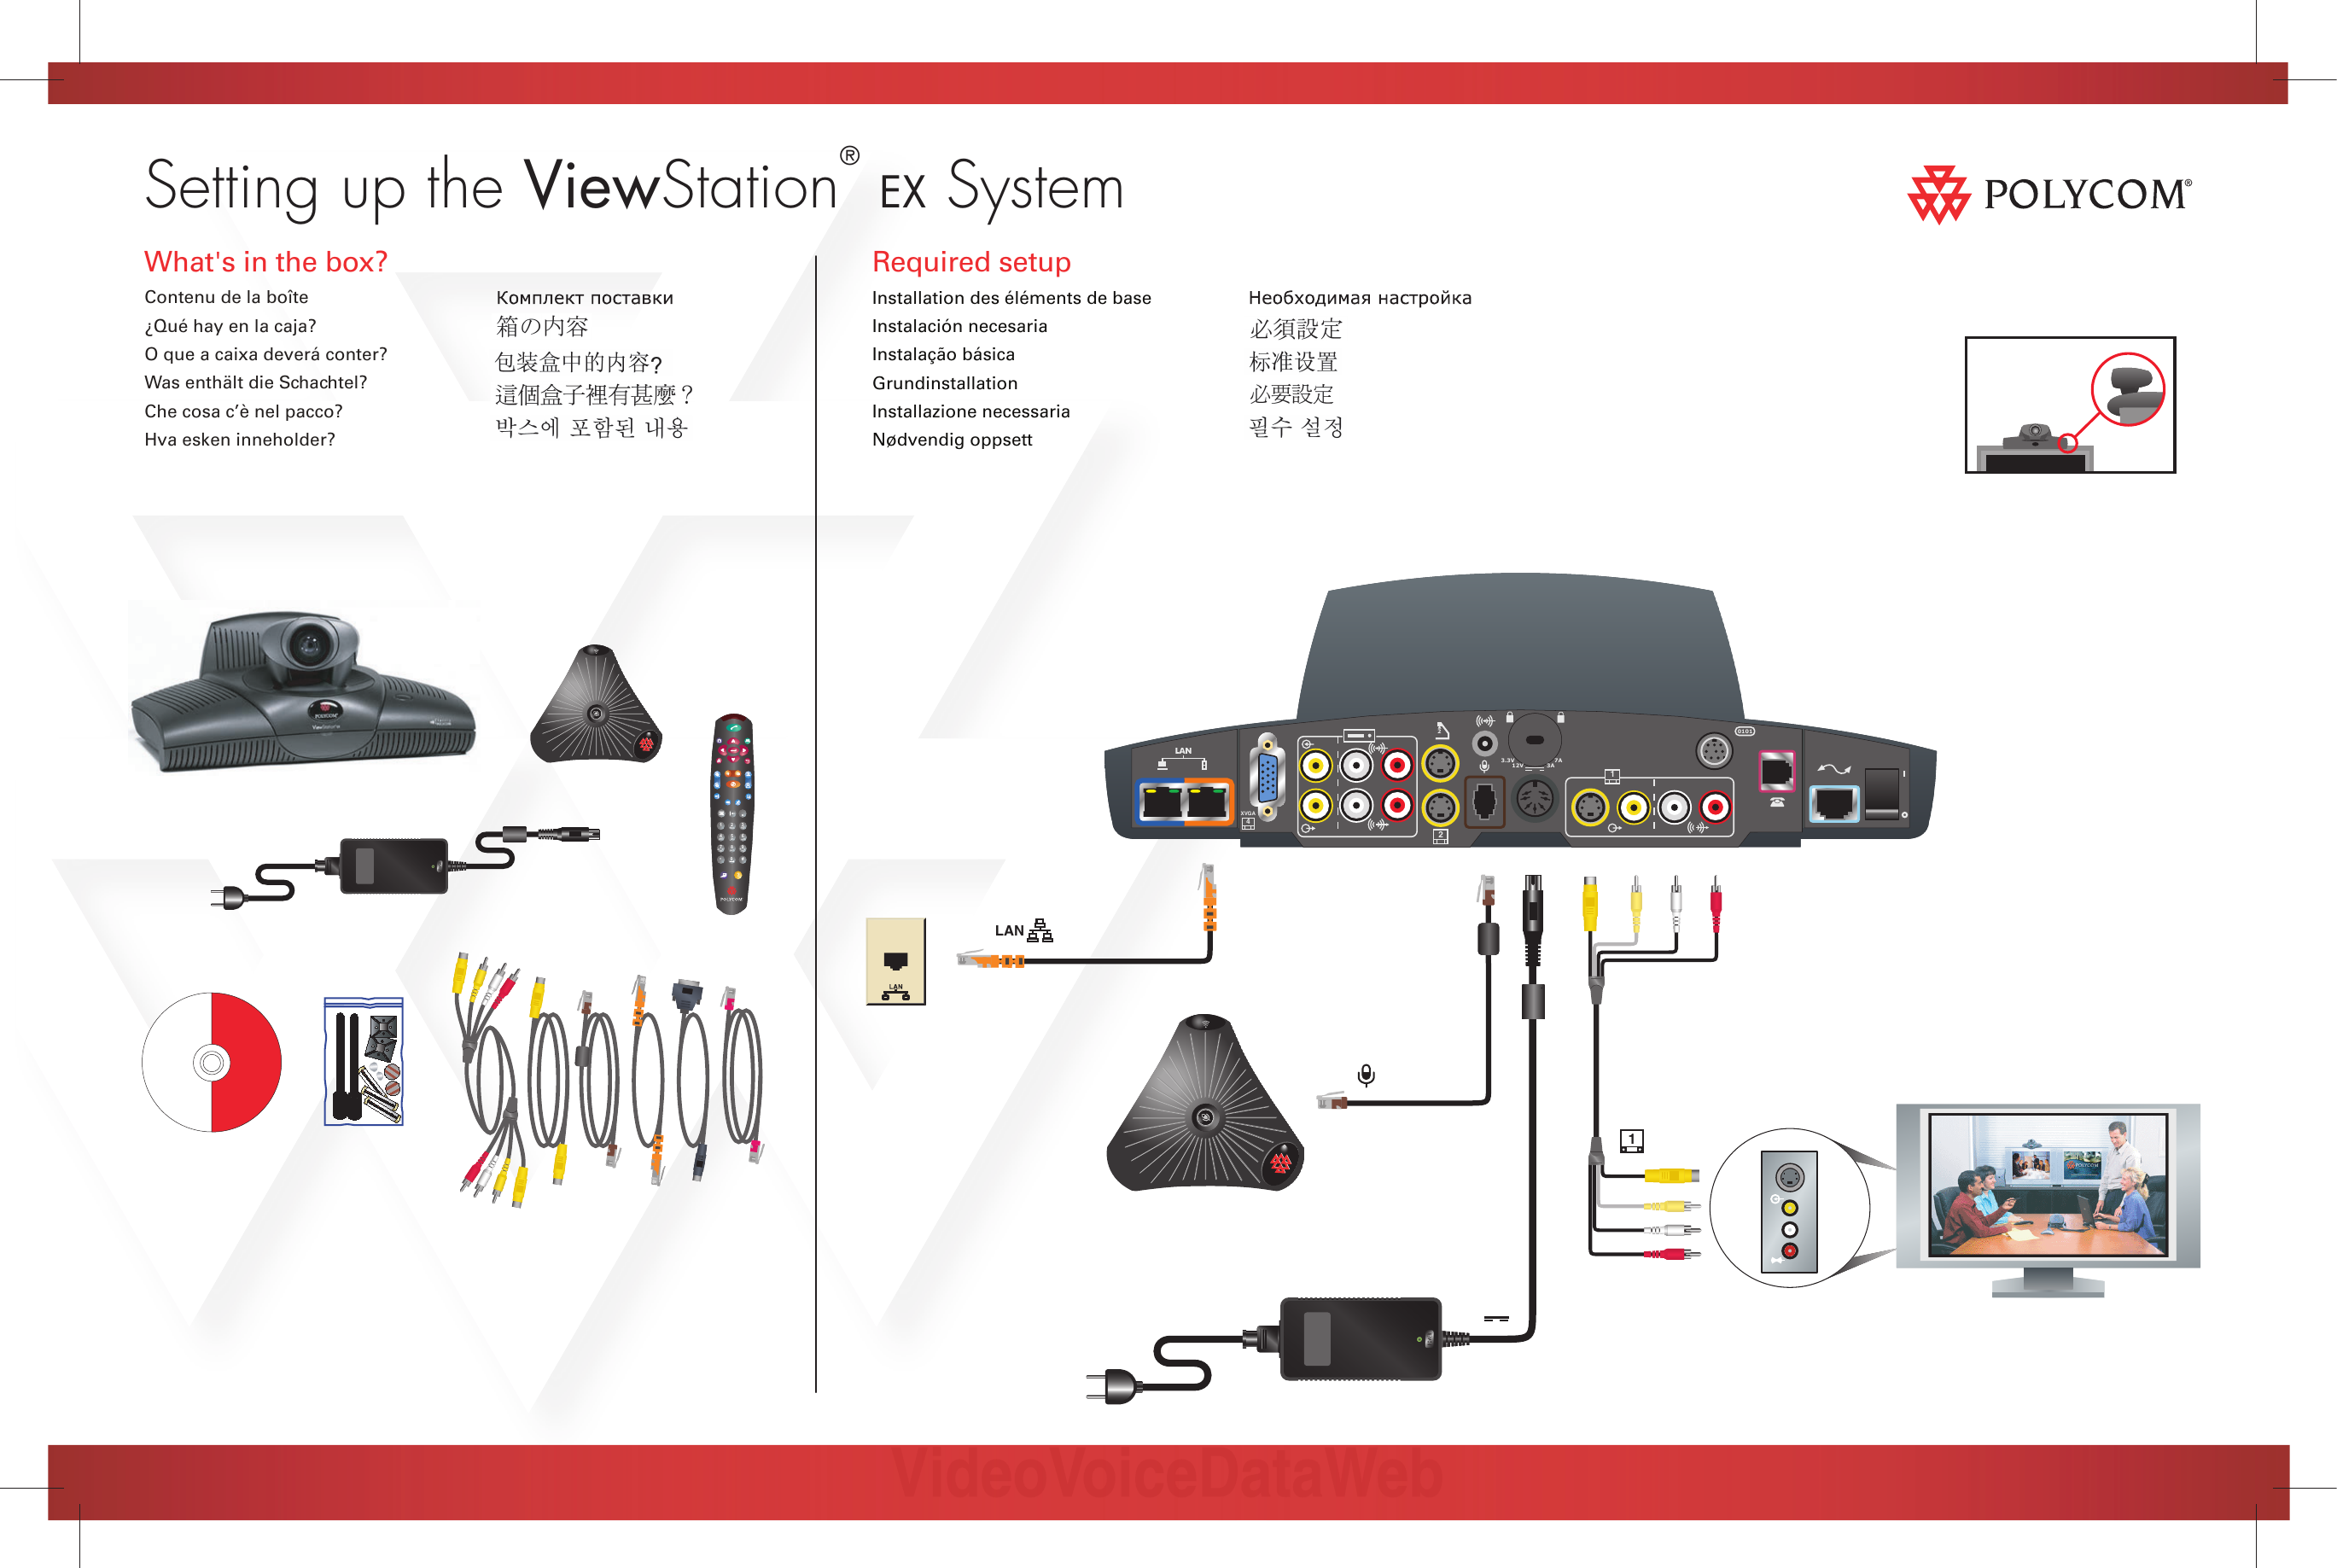 polycom crt television users manual setting up the viewstation ex system rh usermanual wiki